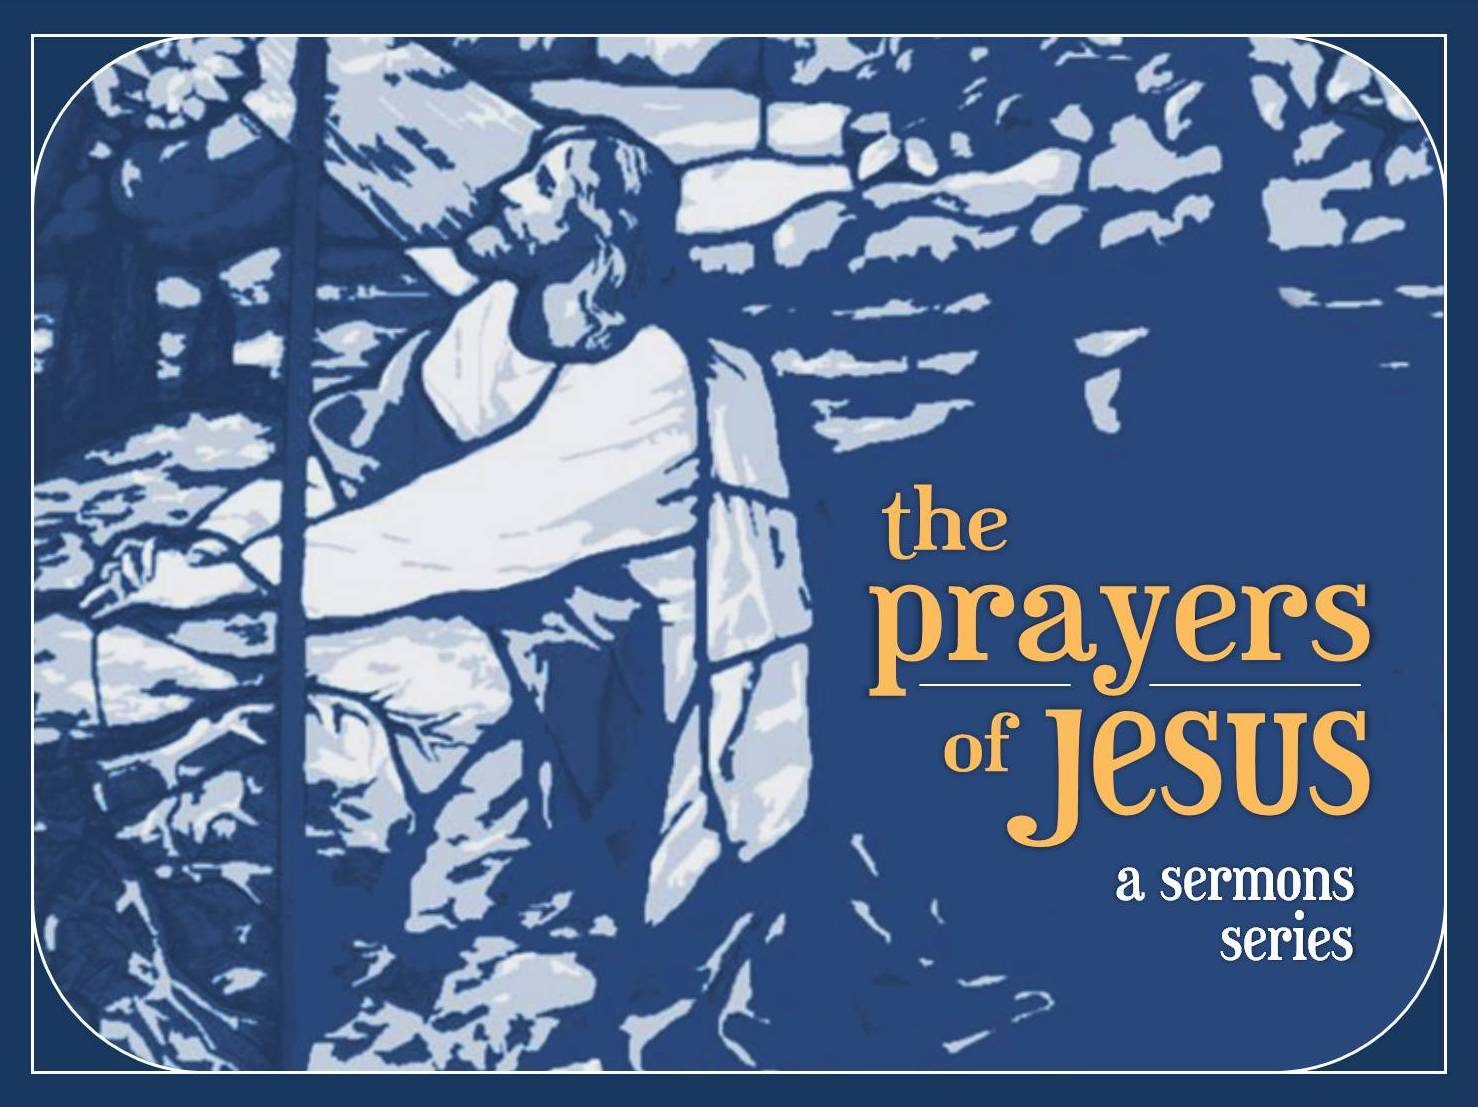 Prayers of Jesus background option 1.jpg